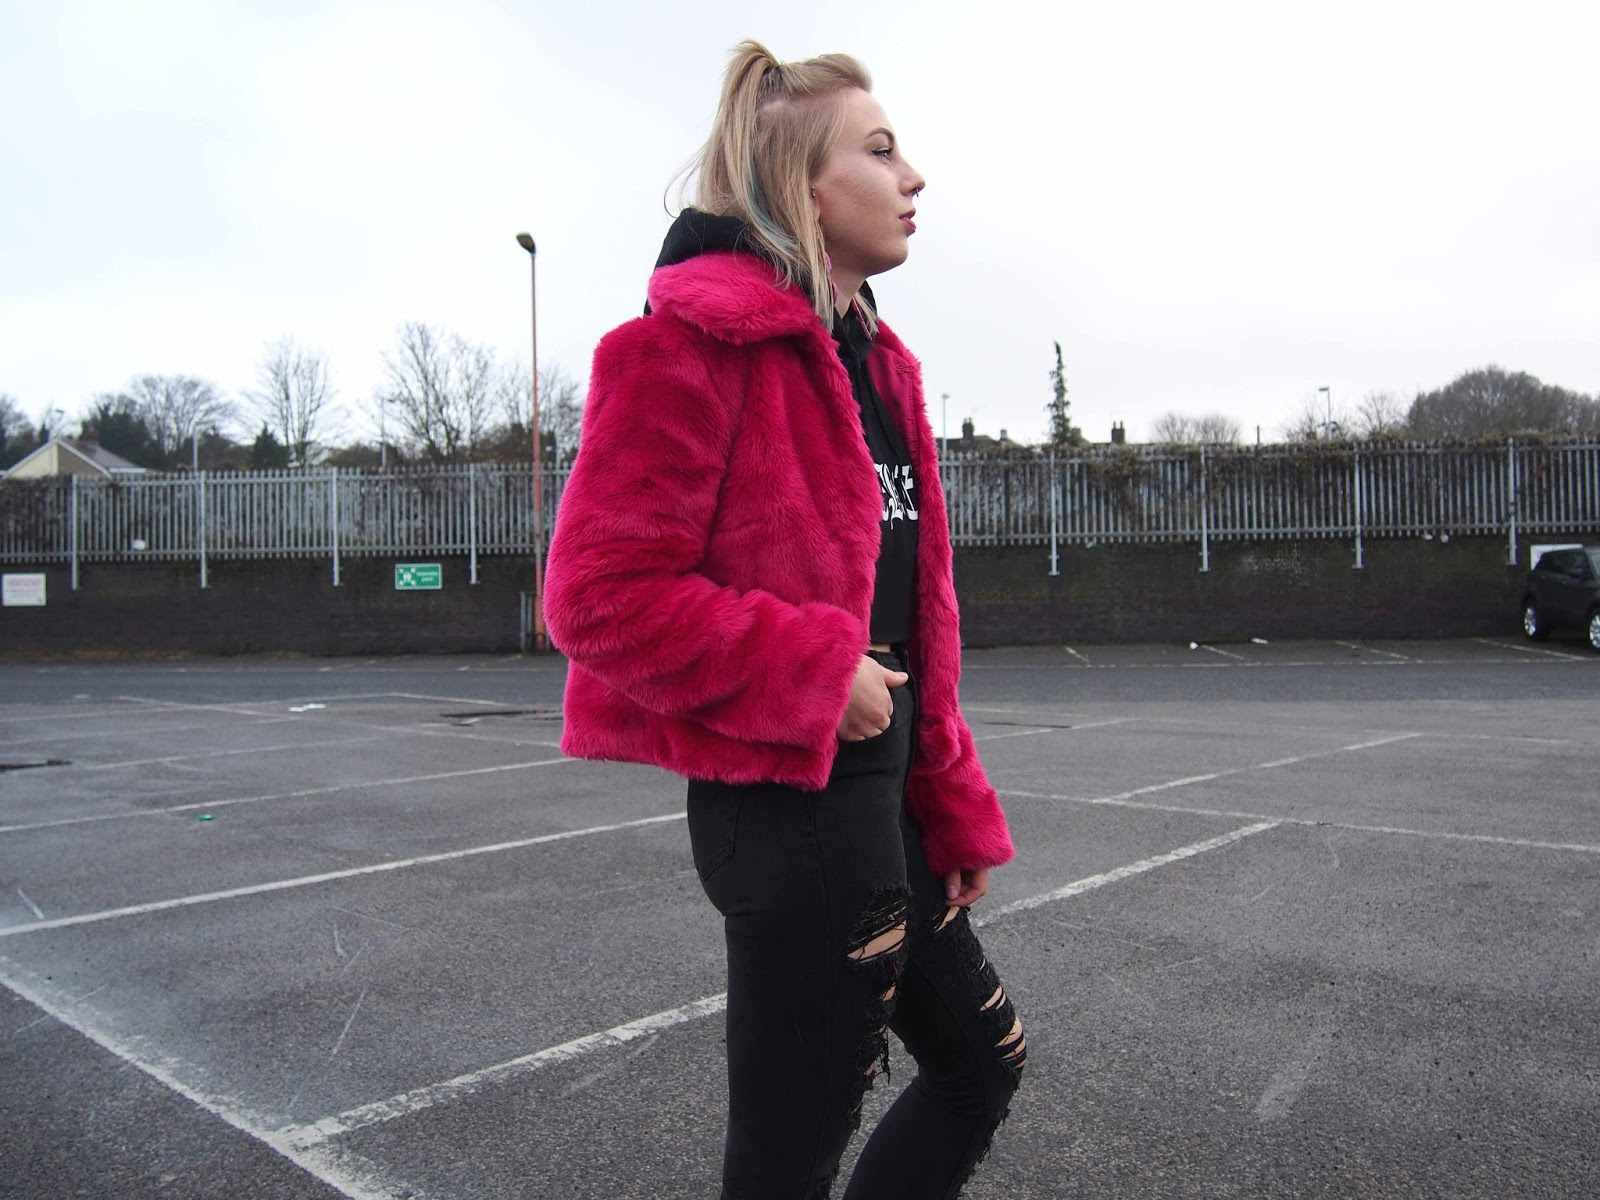 asos pink faux fur coat, cropped hoodie in the winter, cropped jumper, high waisted black skinny ripped jeans, pink high top converse, black and pink, grunge alternative 90's style 1